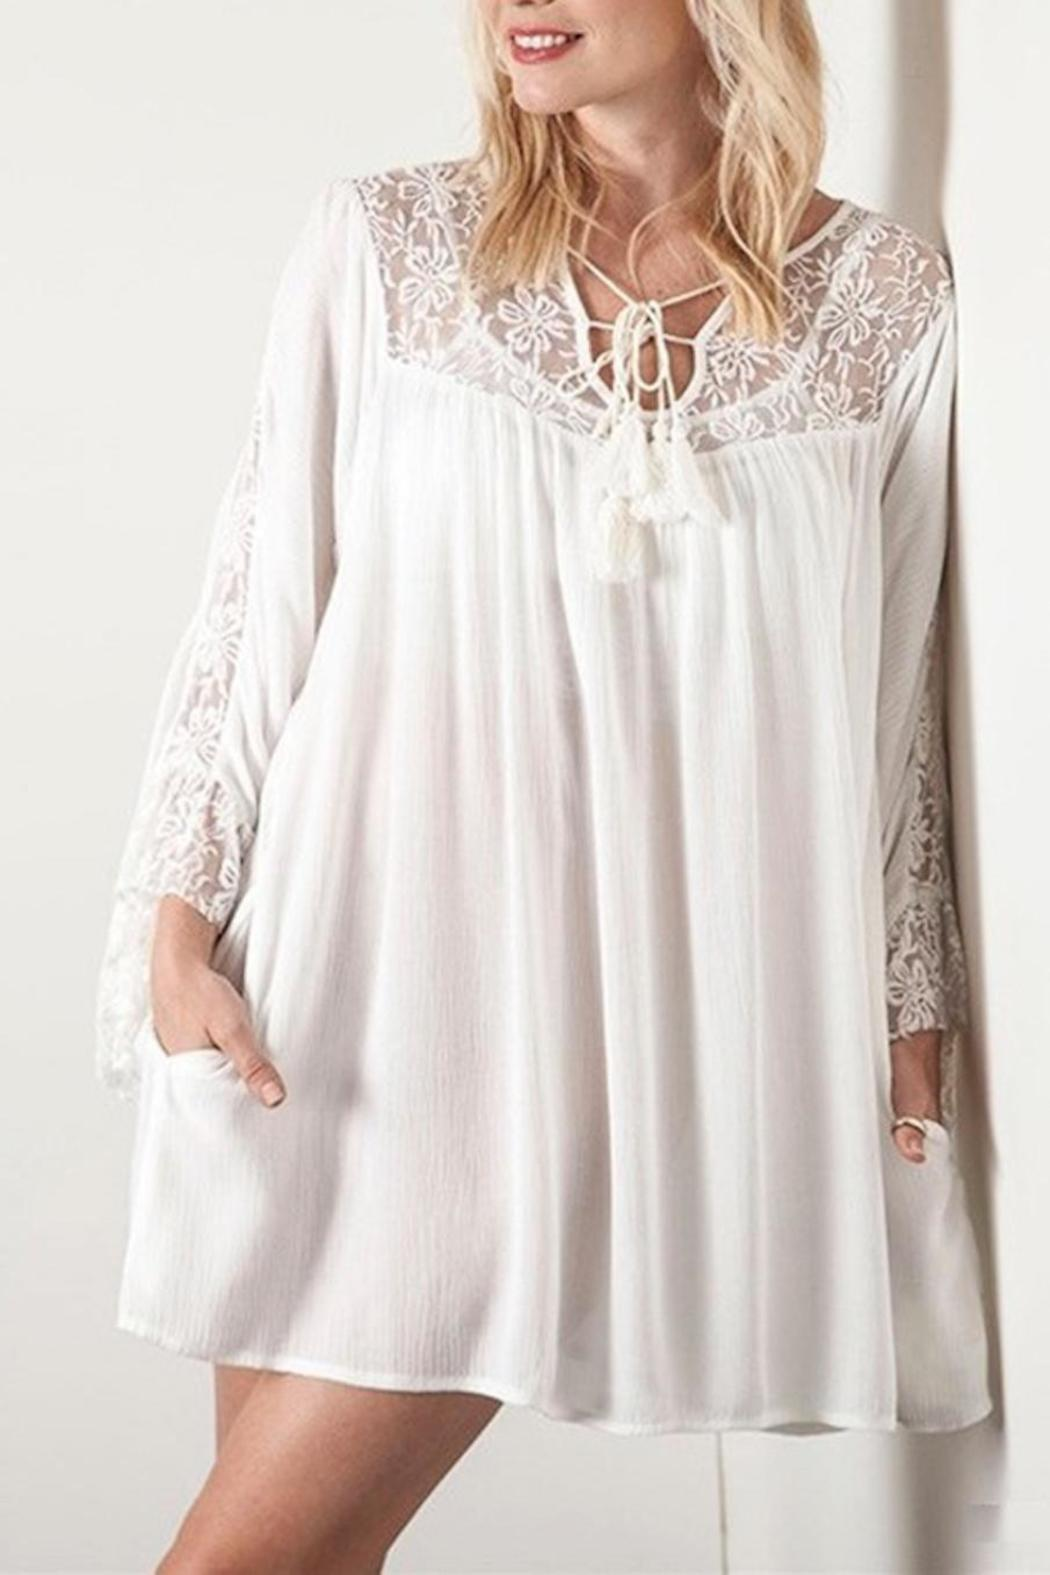 People Outfitter Kimmi Lace Dress - Main Image